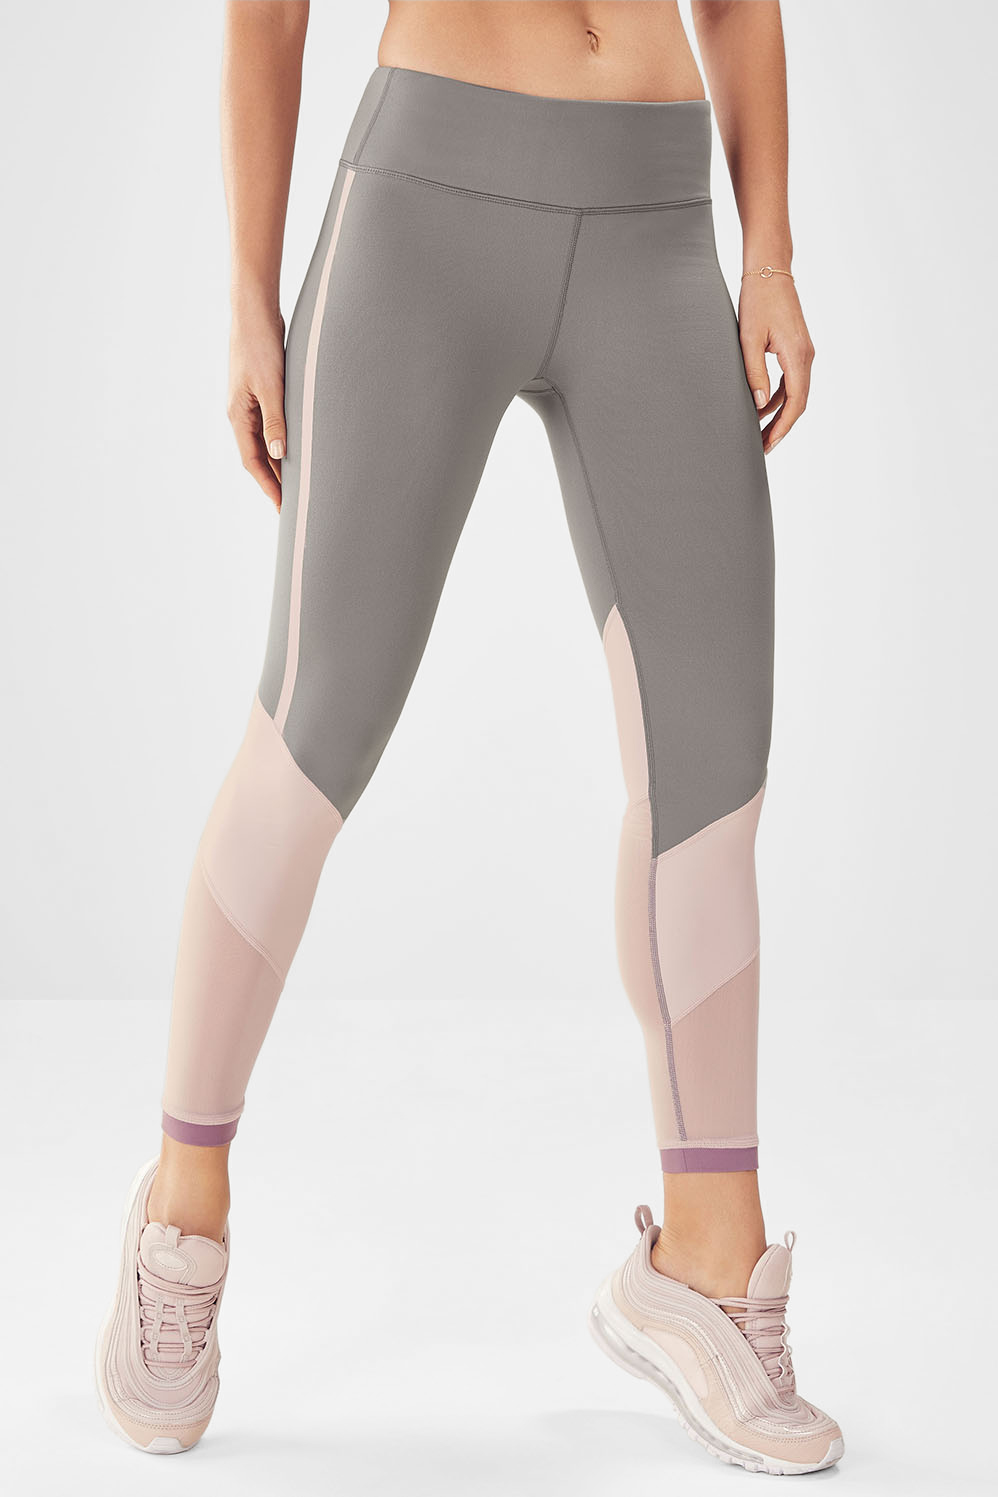 d2437cd9a92c7b Salar Mesh PowerHold® Legging - Clay/Dusty Rose/Rouge